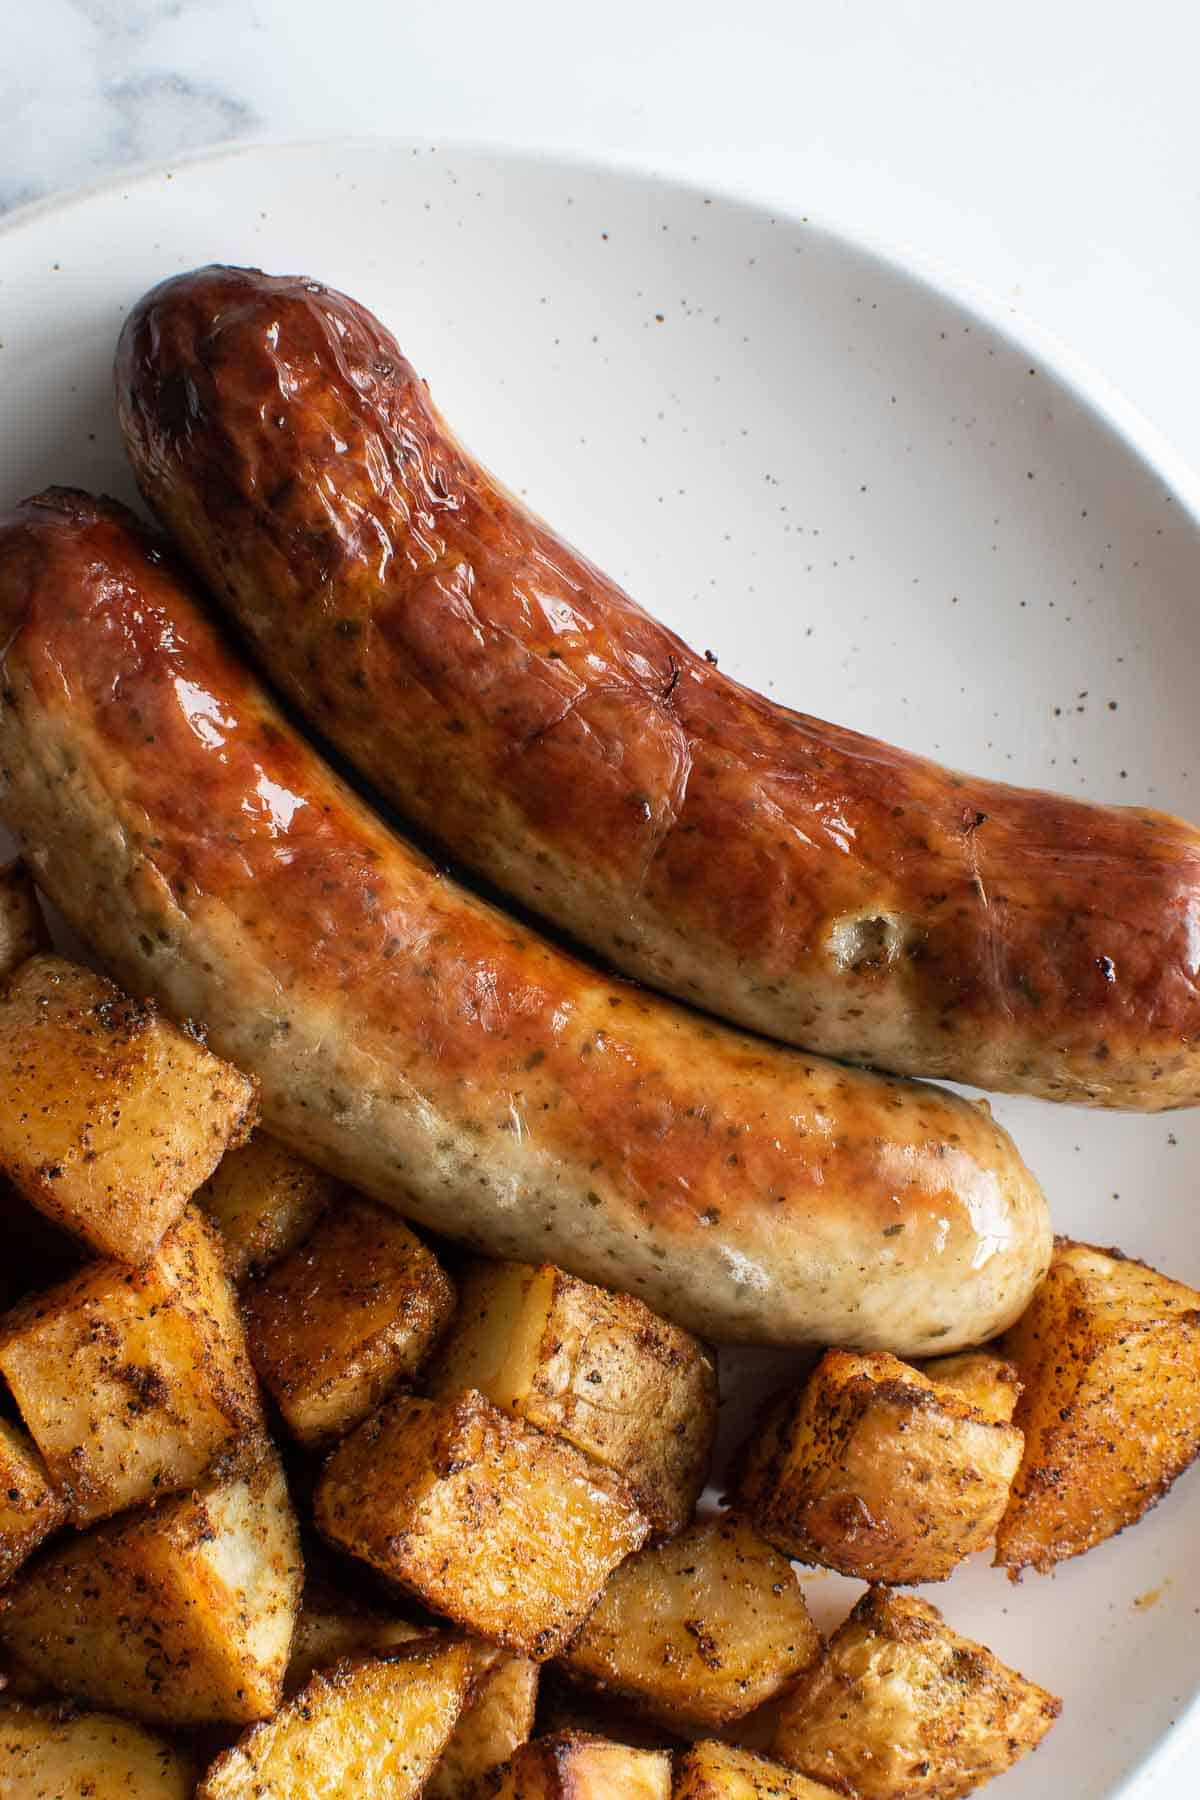 Bratwurst sausages on a plate with roasted potatoes.